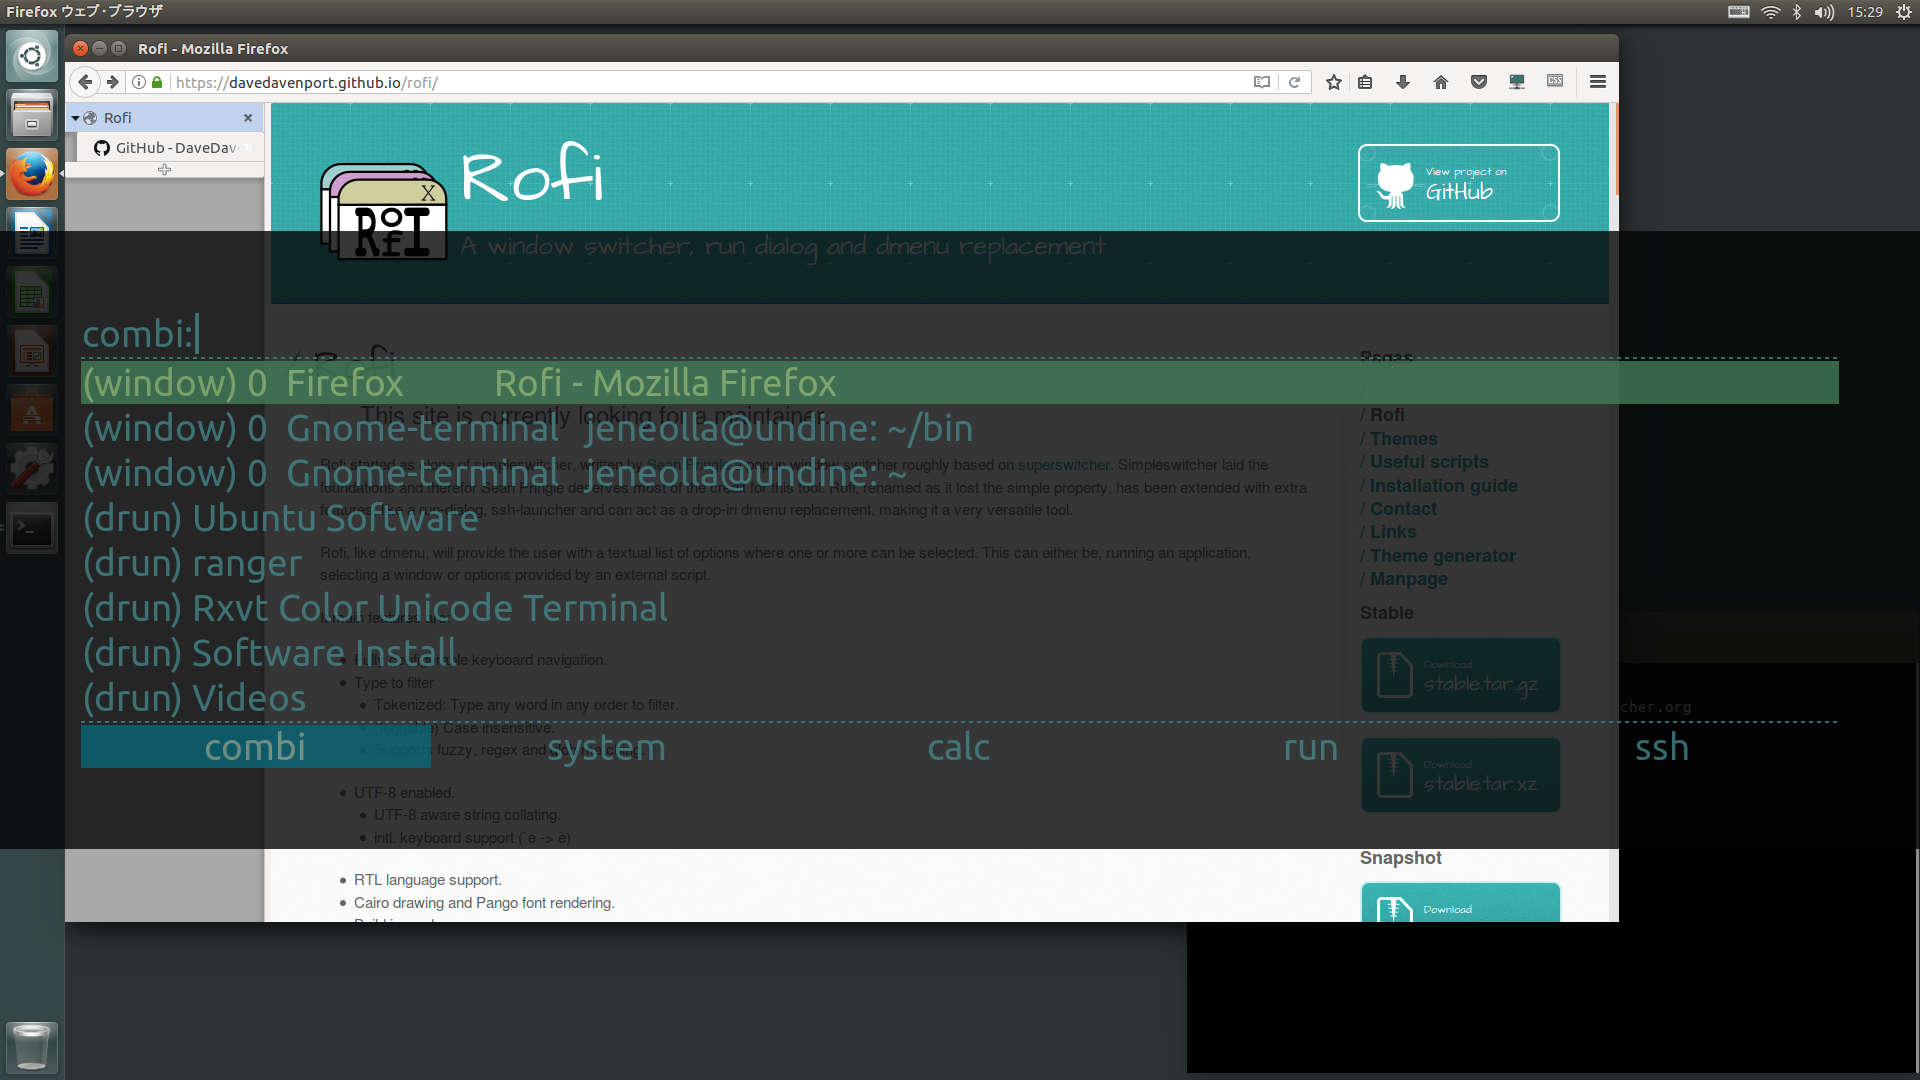 rofi_customized_dashboard_1.jpg